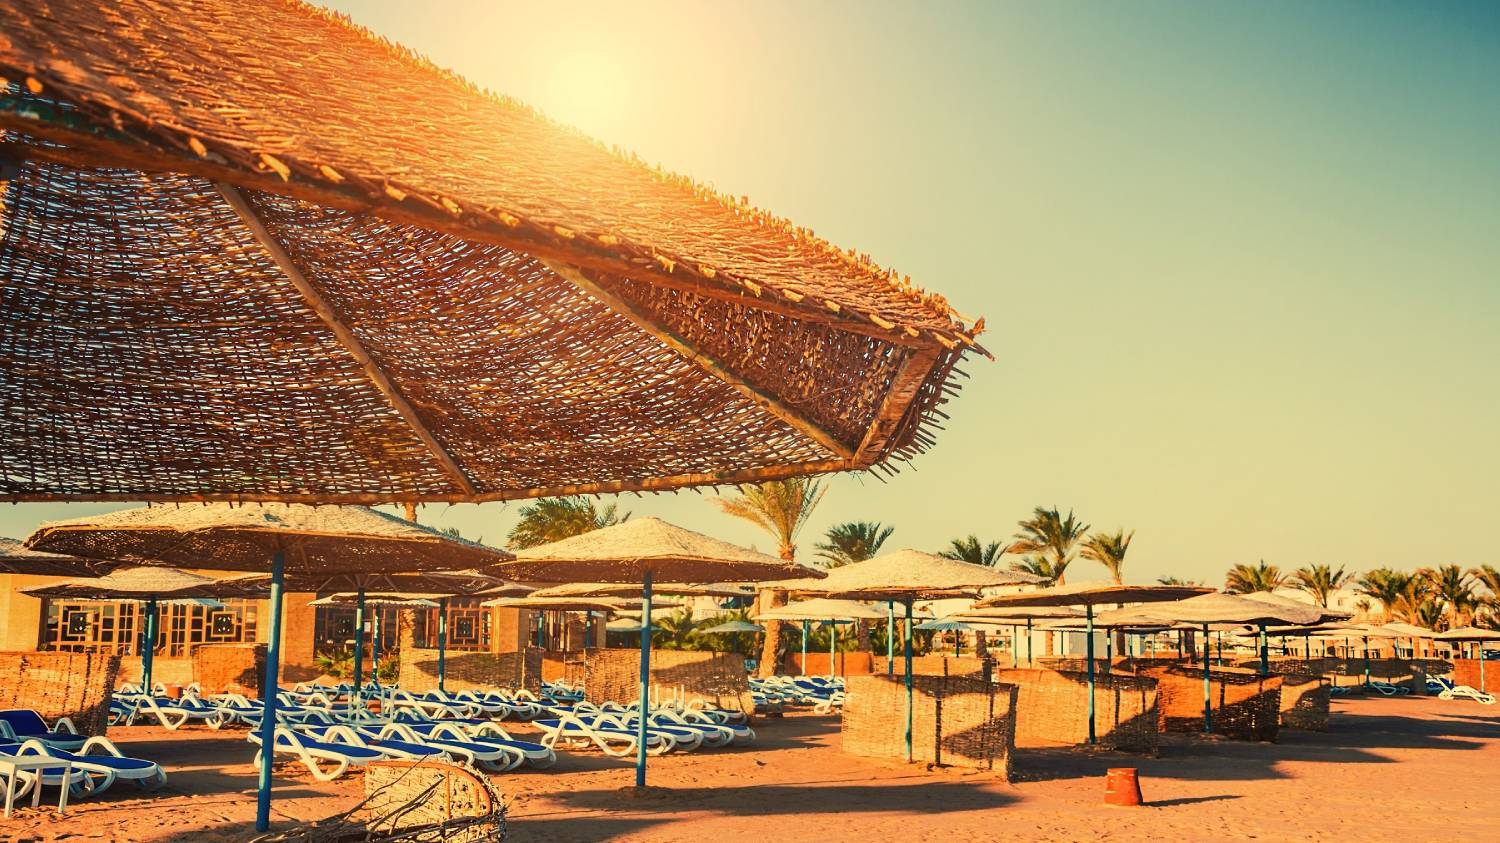 Hurghada - The Best Places To Visit In Egypt